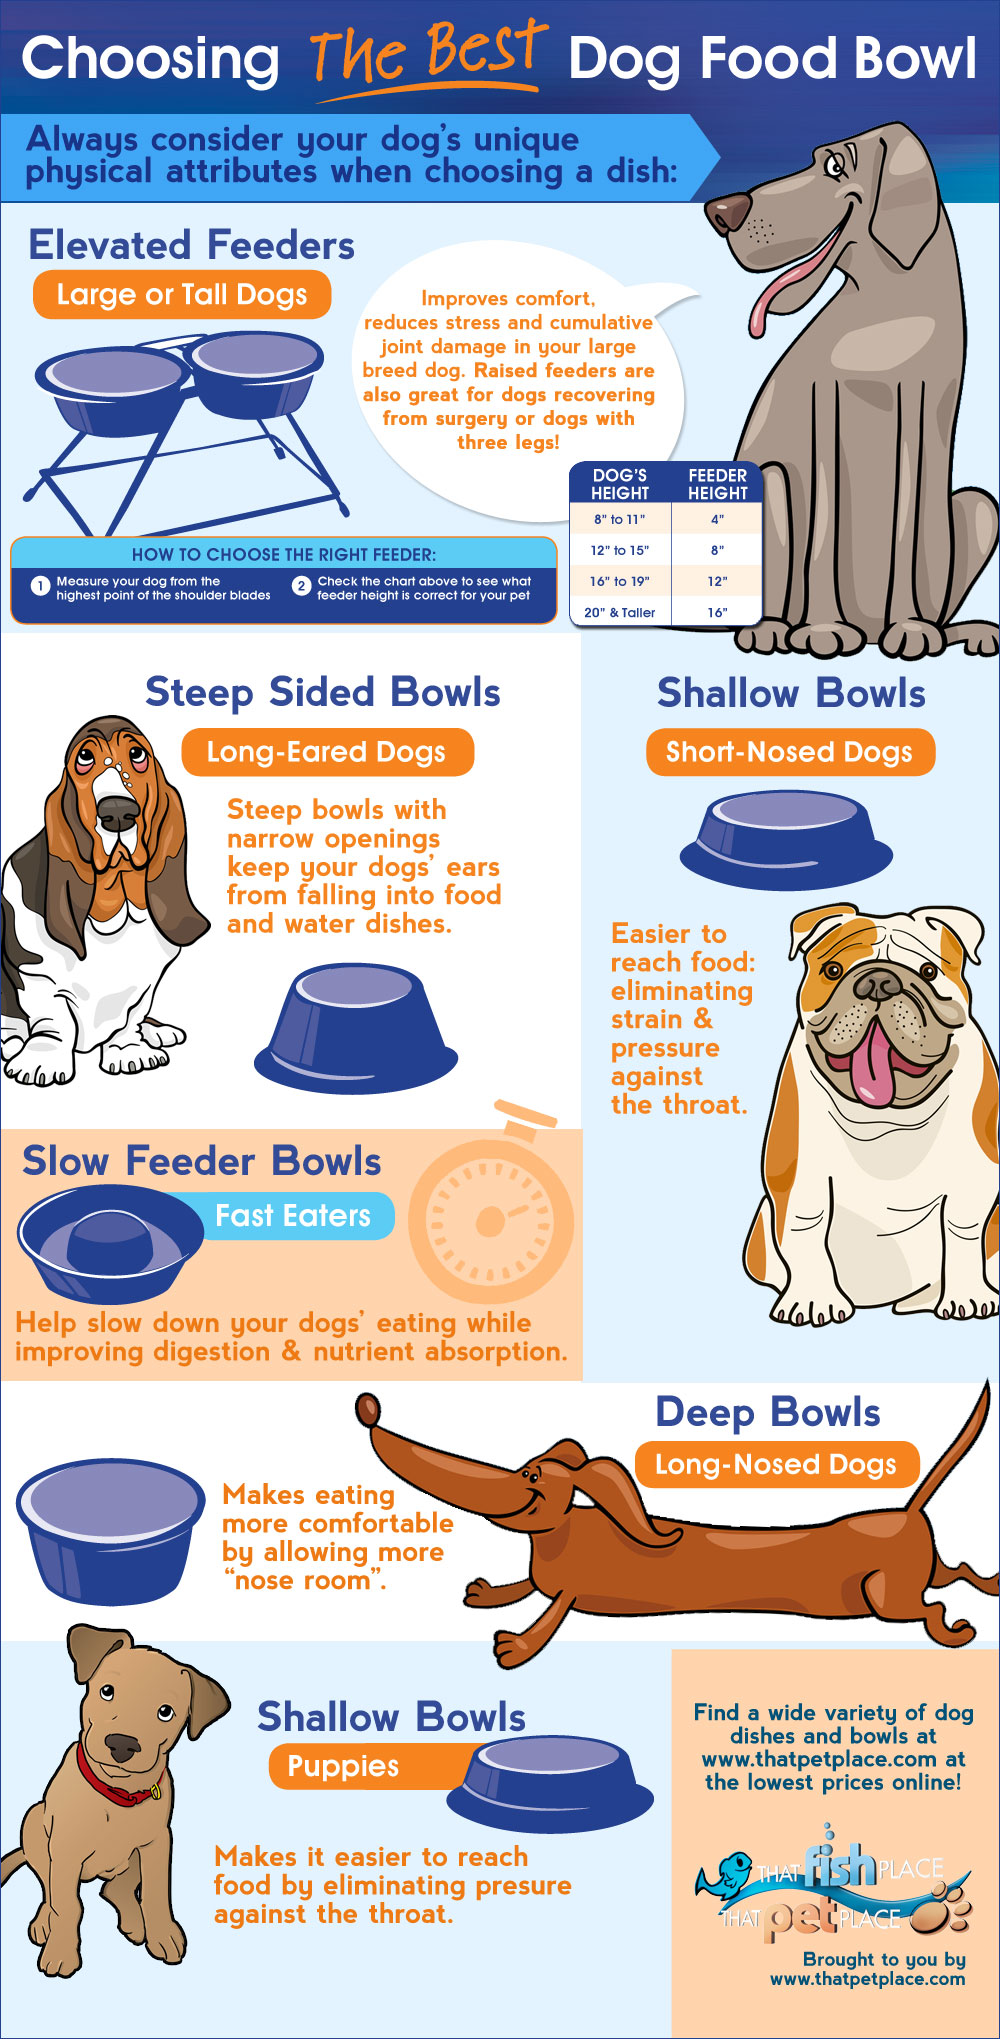 Choosing The Best Dog Food Bowl [Infographic]